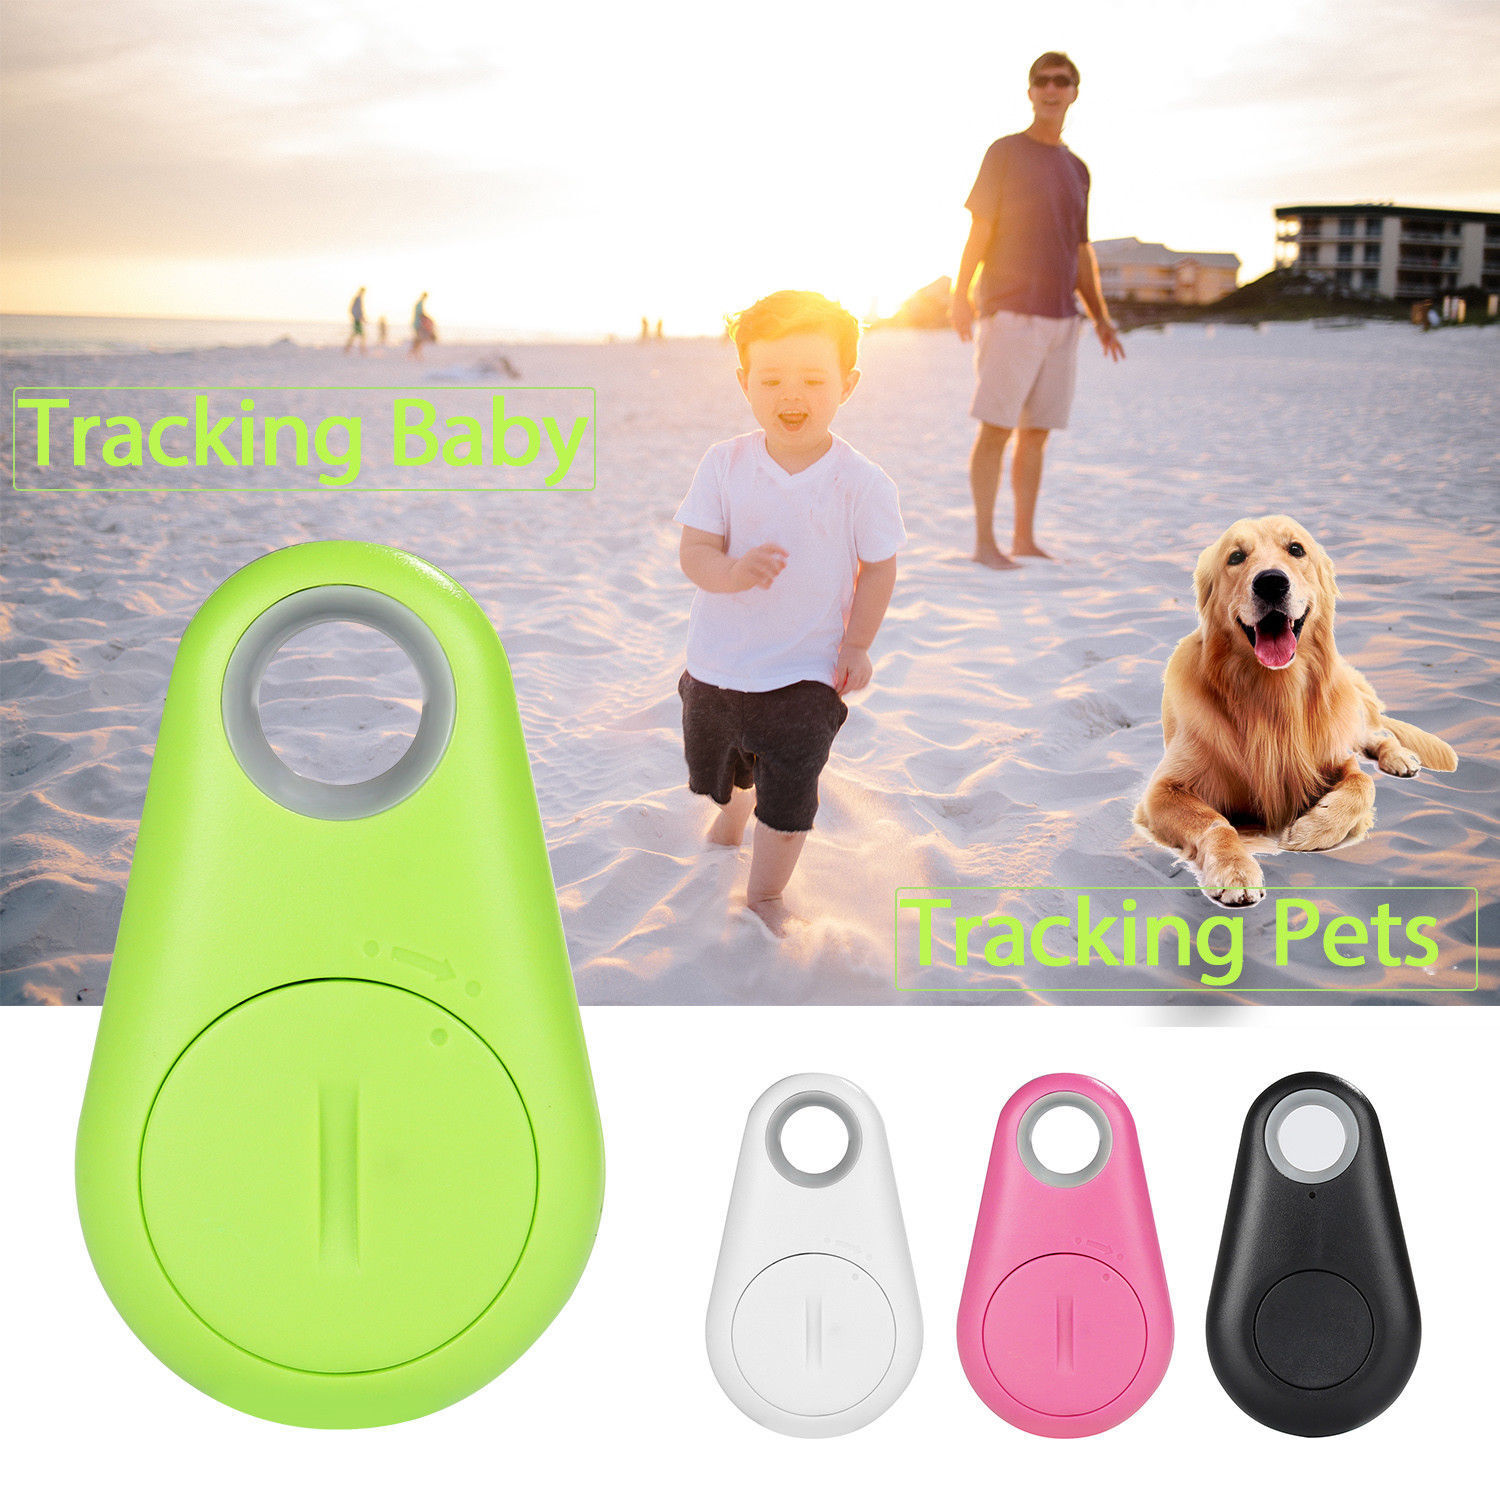 BLUETOOTH WIRELESS ANTI LOST TRACKER ALARM KEY CHILD PET FIN